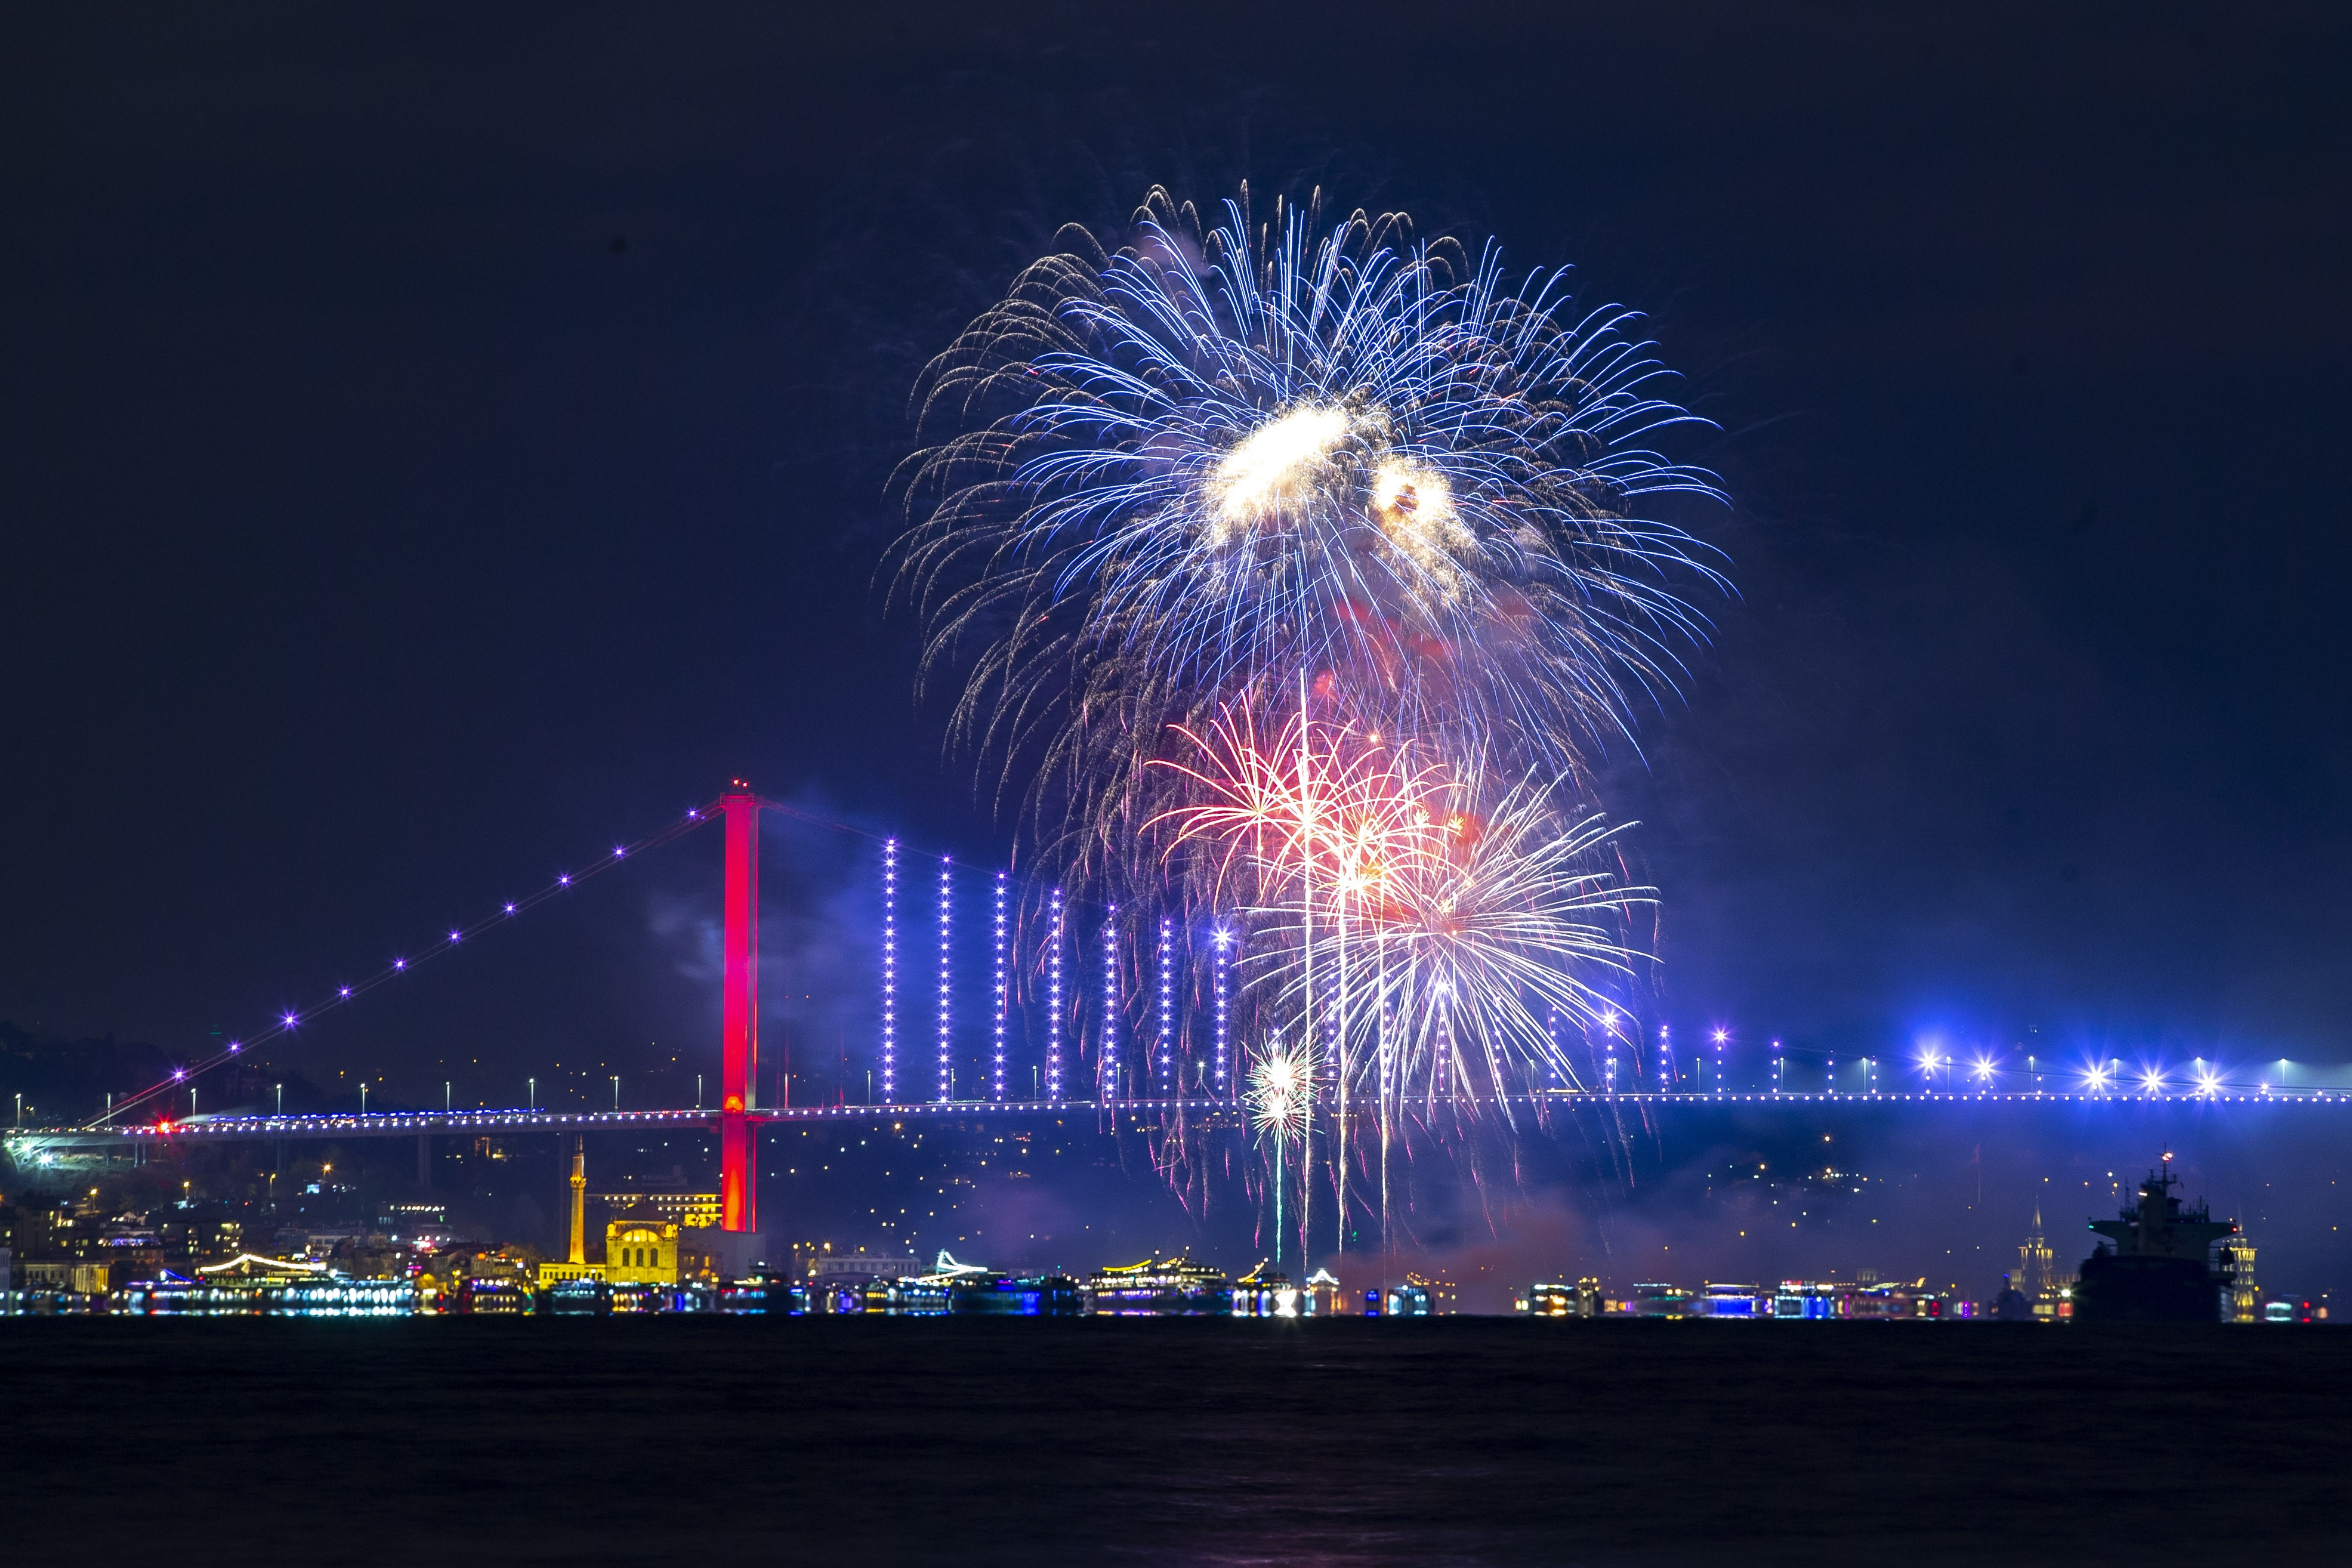 Pictures From 2020 New Year's Eve Celebrations Across the ...